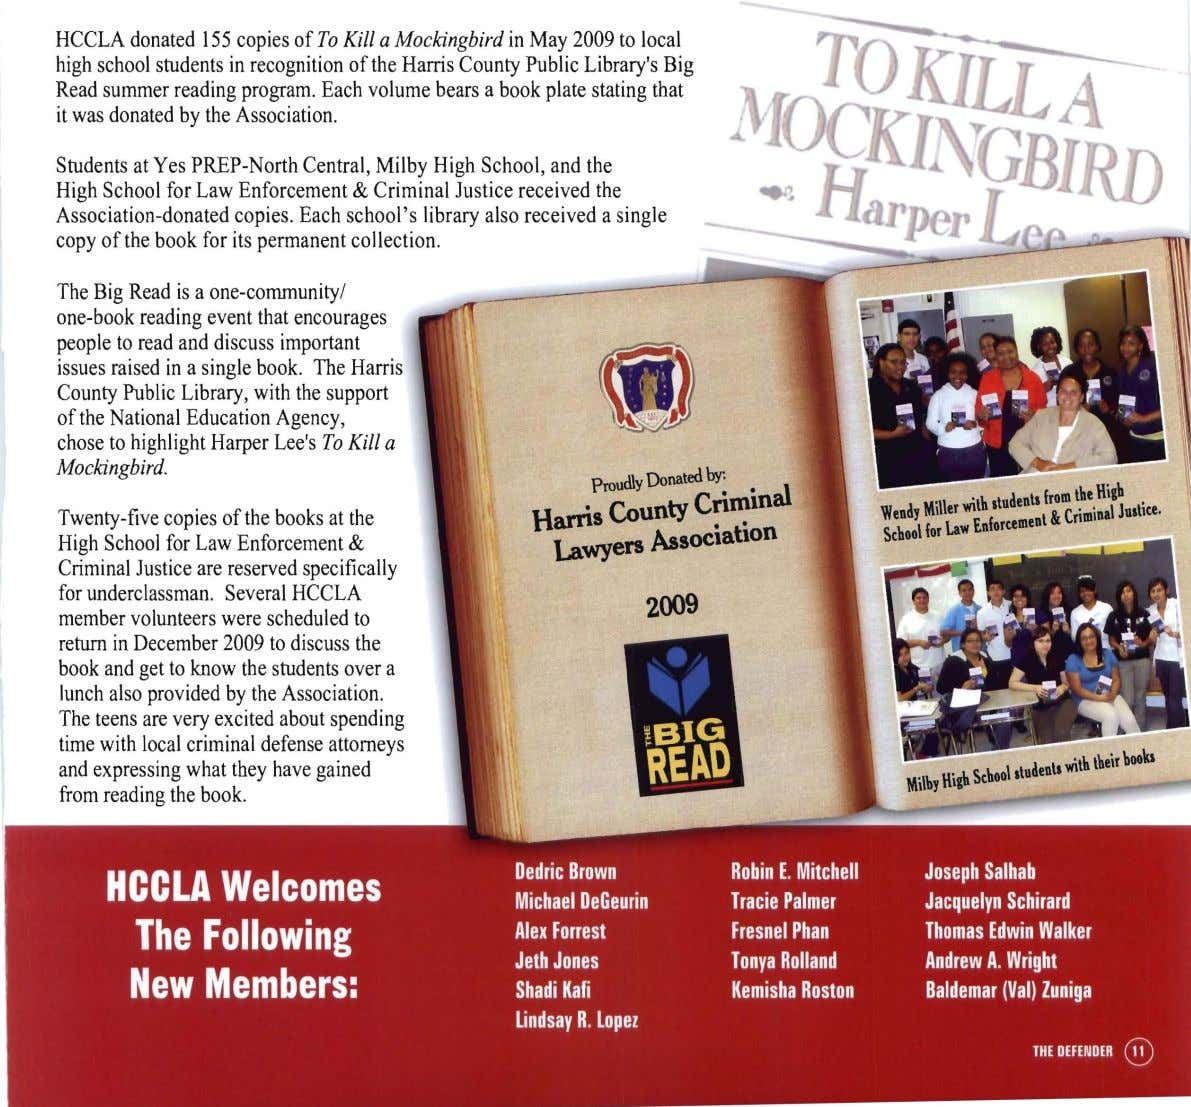 HCCLA donated 155 copies of To Kill a Mockingbird in May 2009 to local high